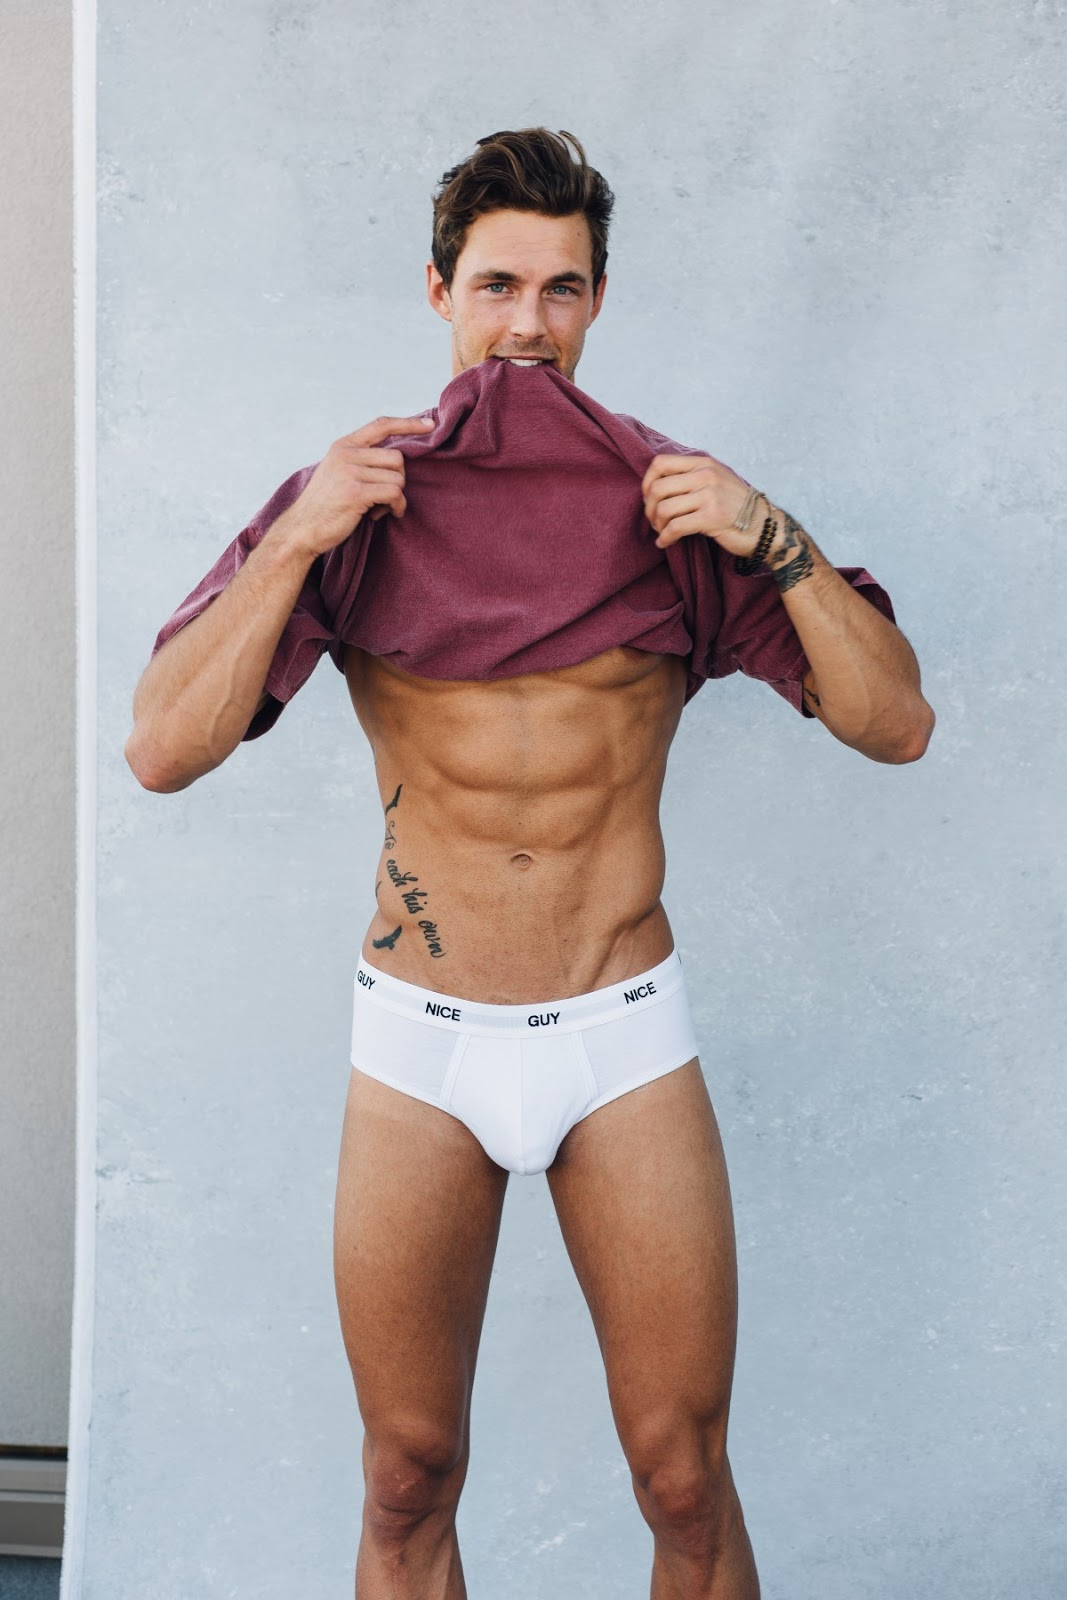 christian-hogue-by-taylor-miller7